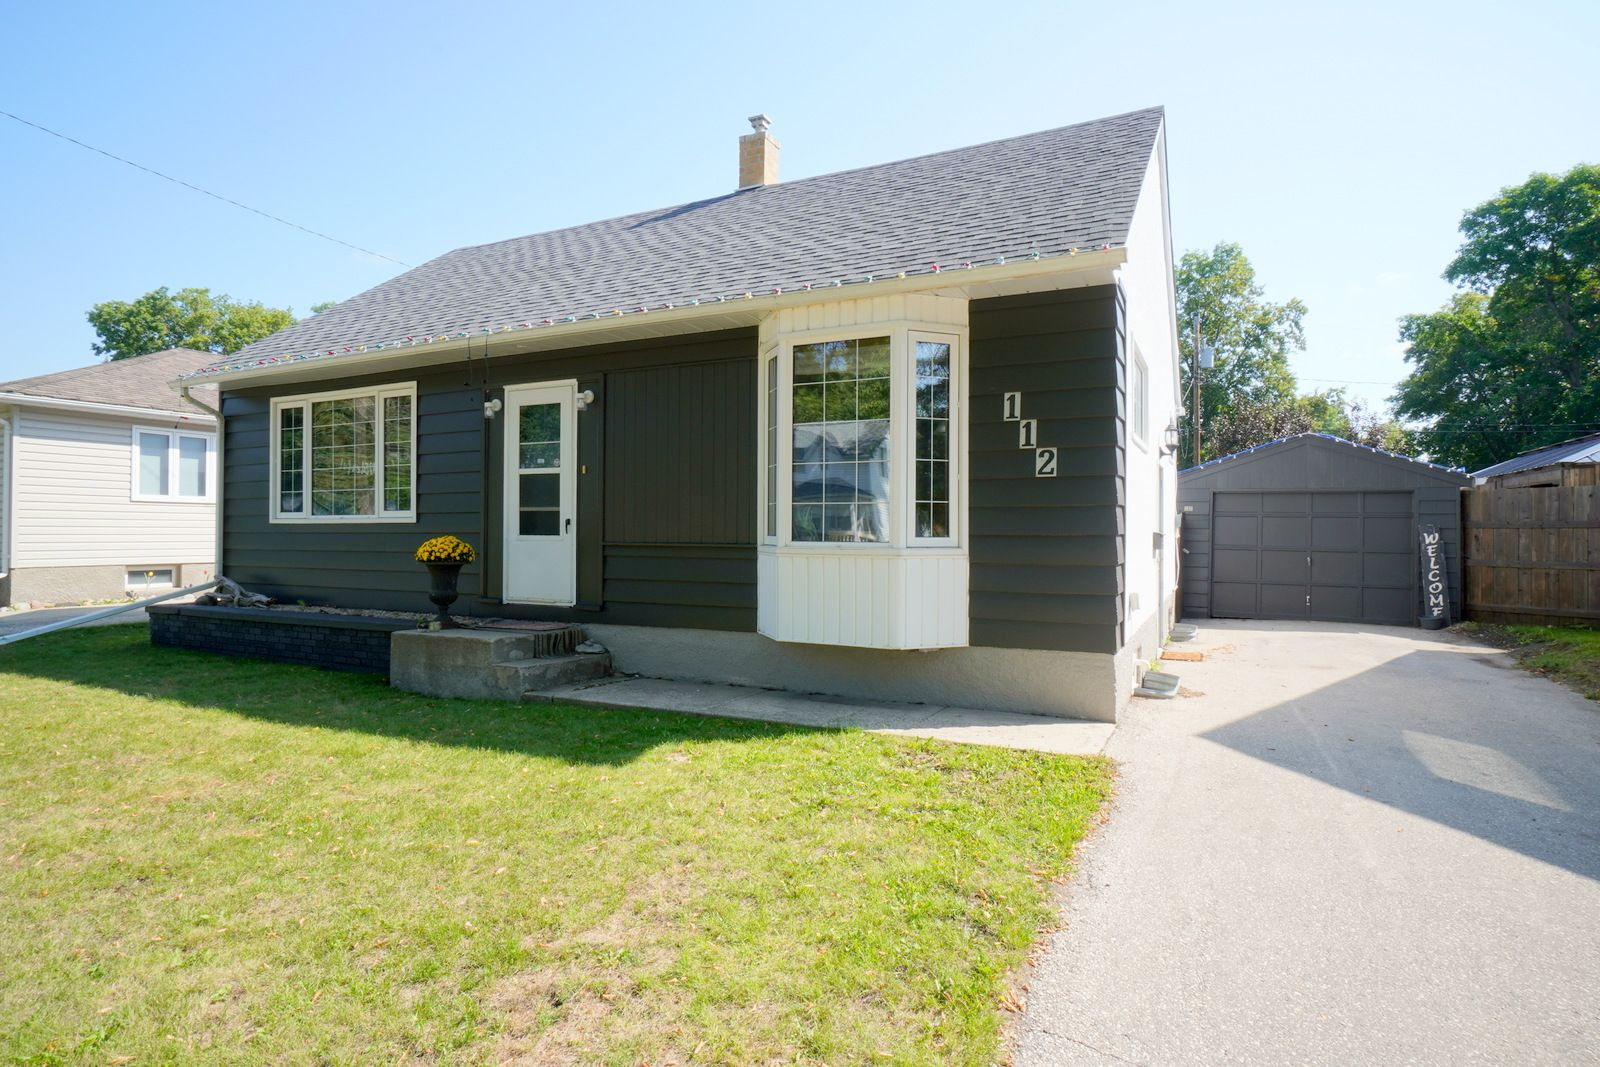 Main Photo: 112 13th St NW in Portage la Prairie: House for sale : MLS®# 202121371